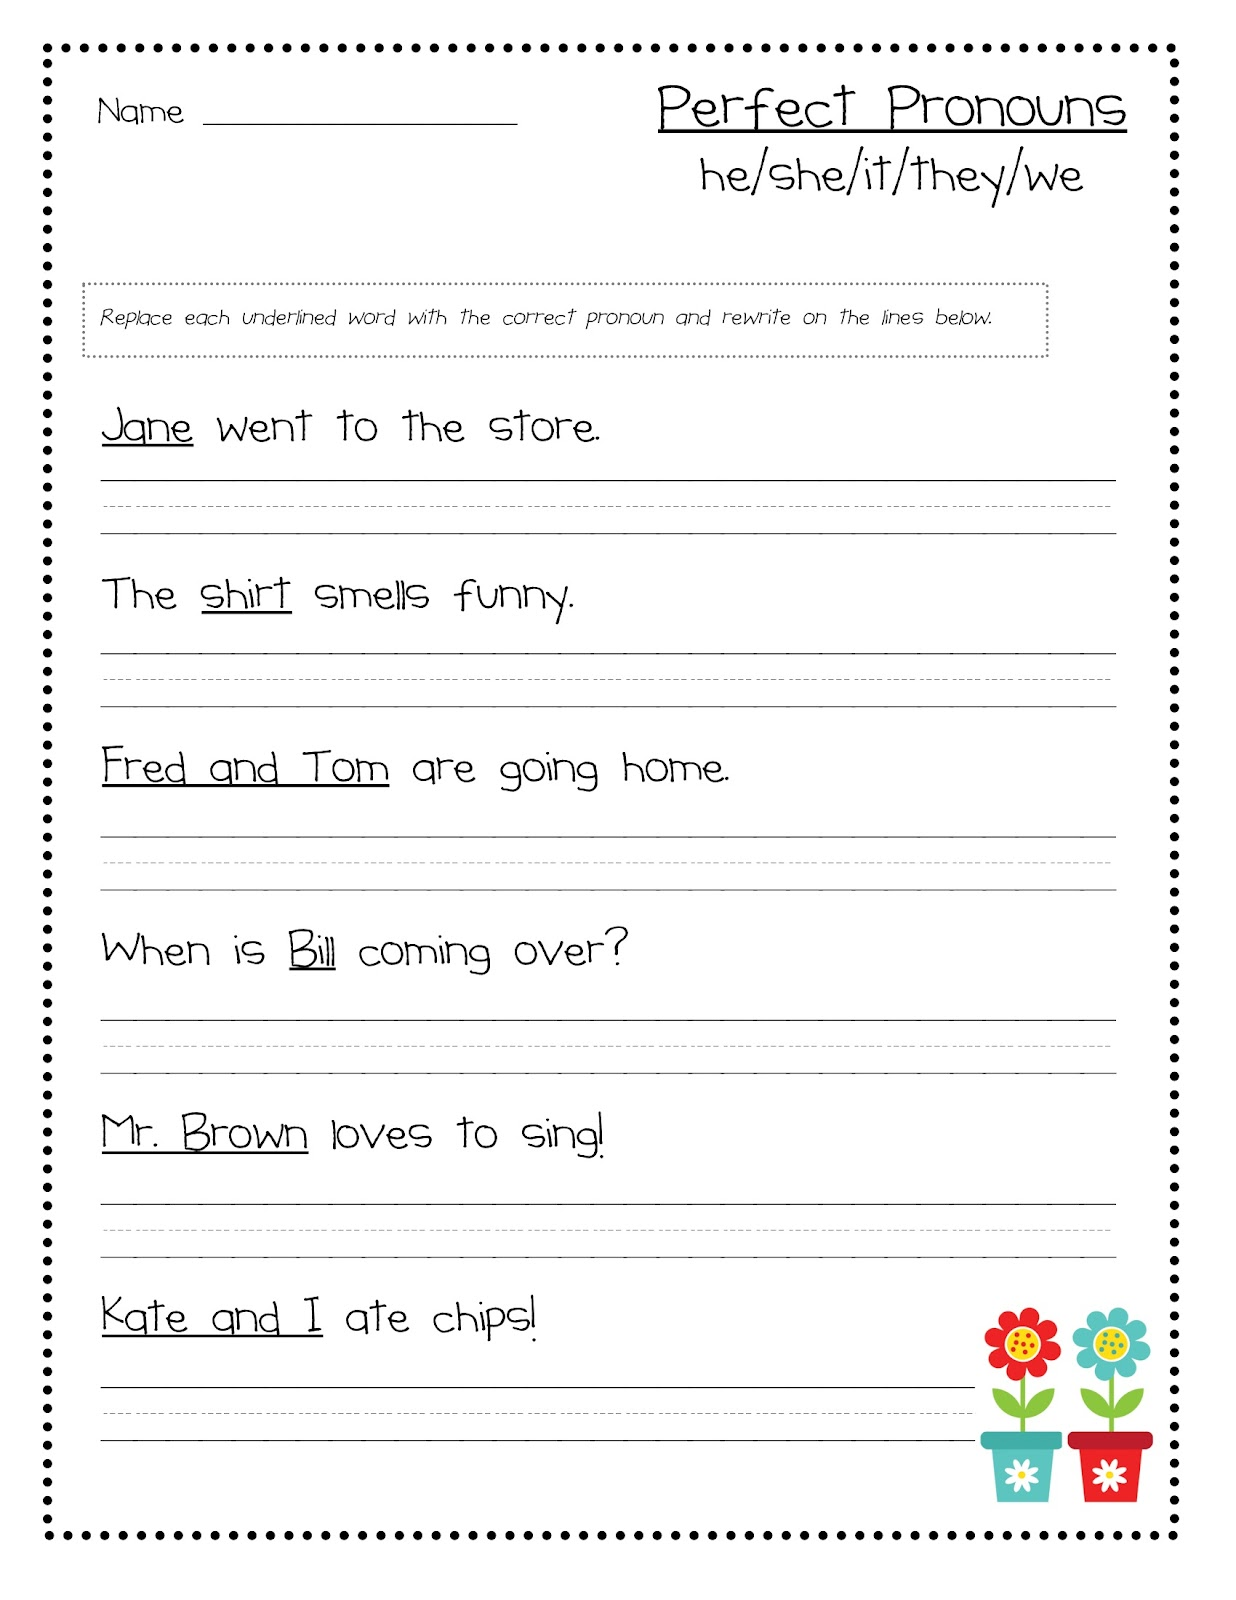 Teacher Idea Factory: POWER UP WITH PRONOUNS - NEW SKILLS PACK